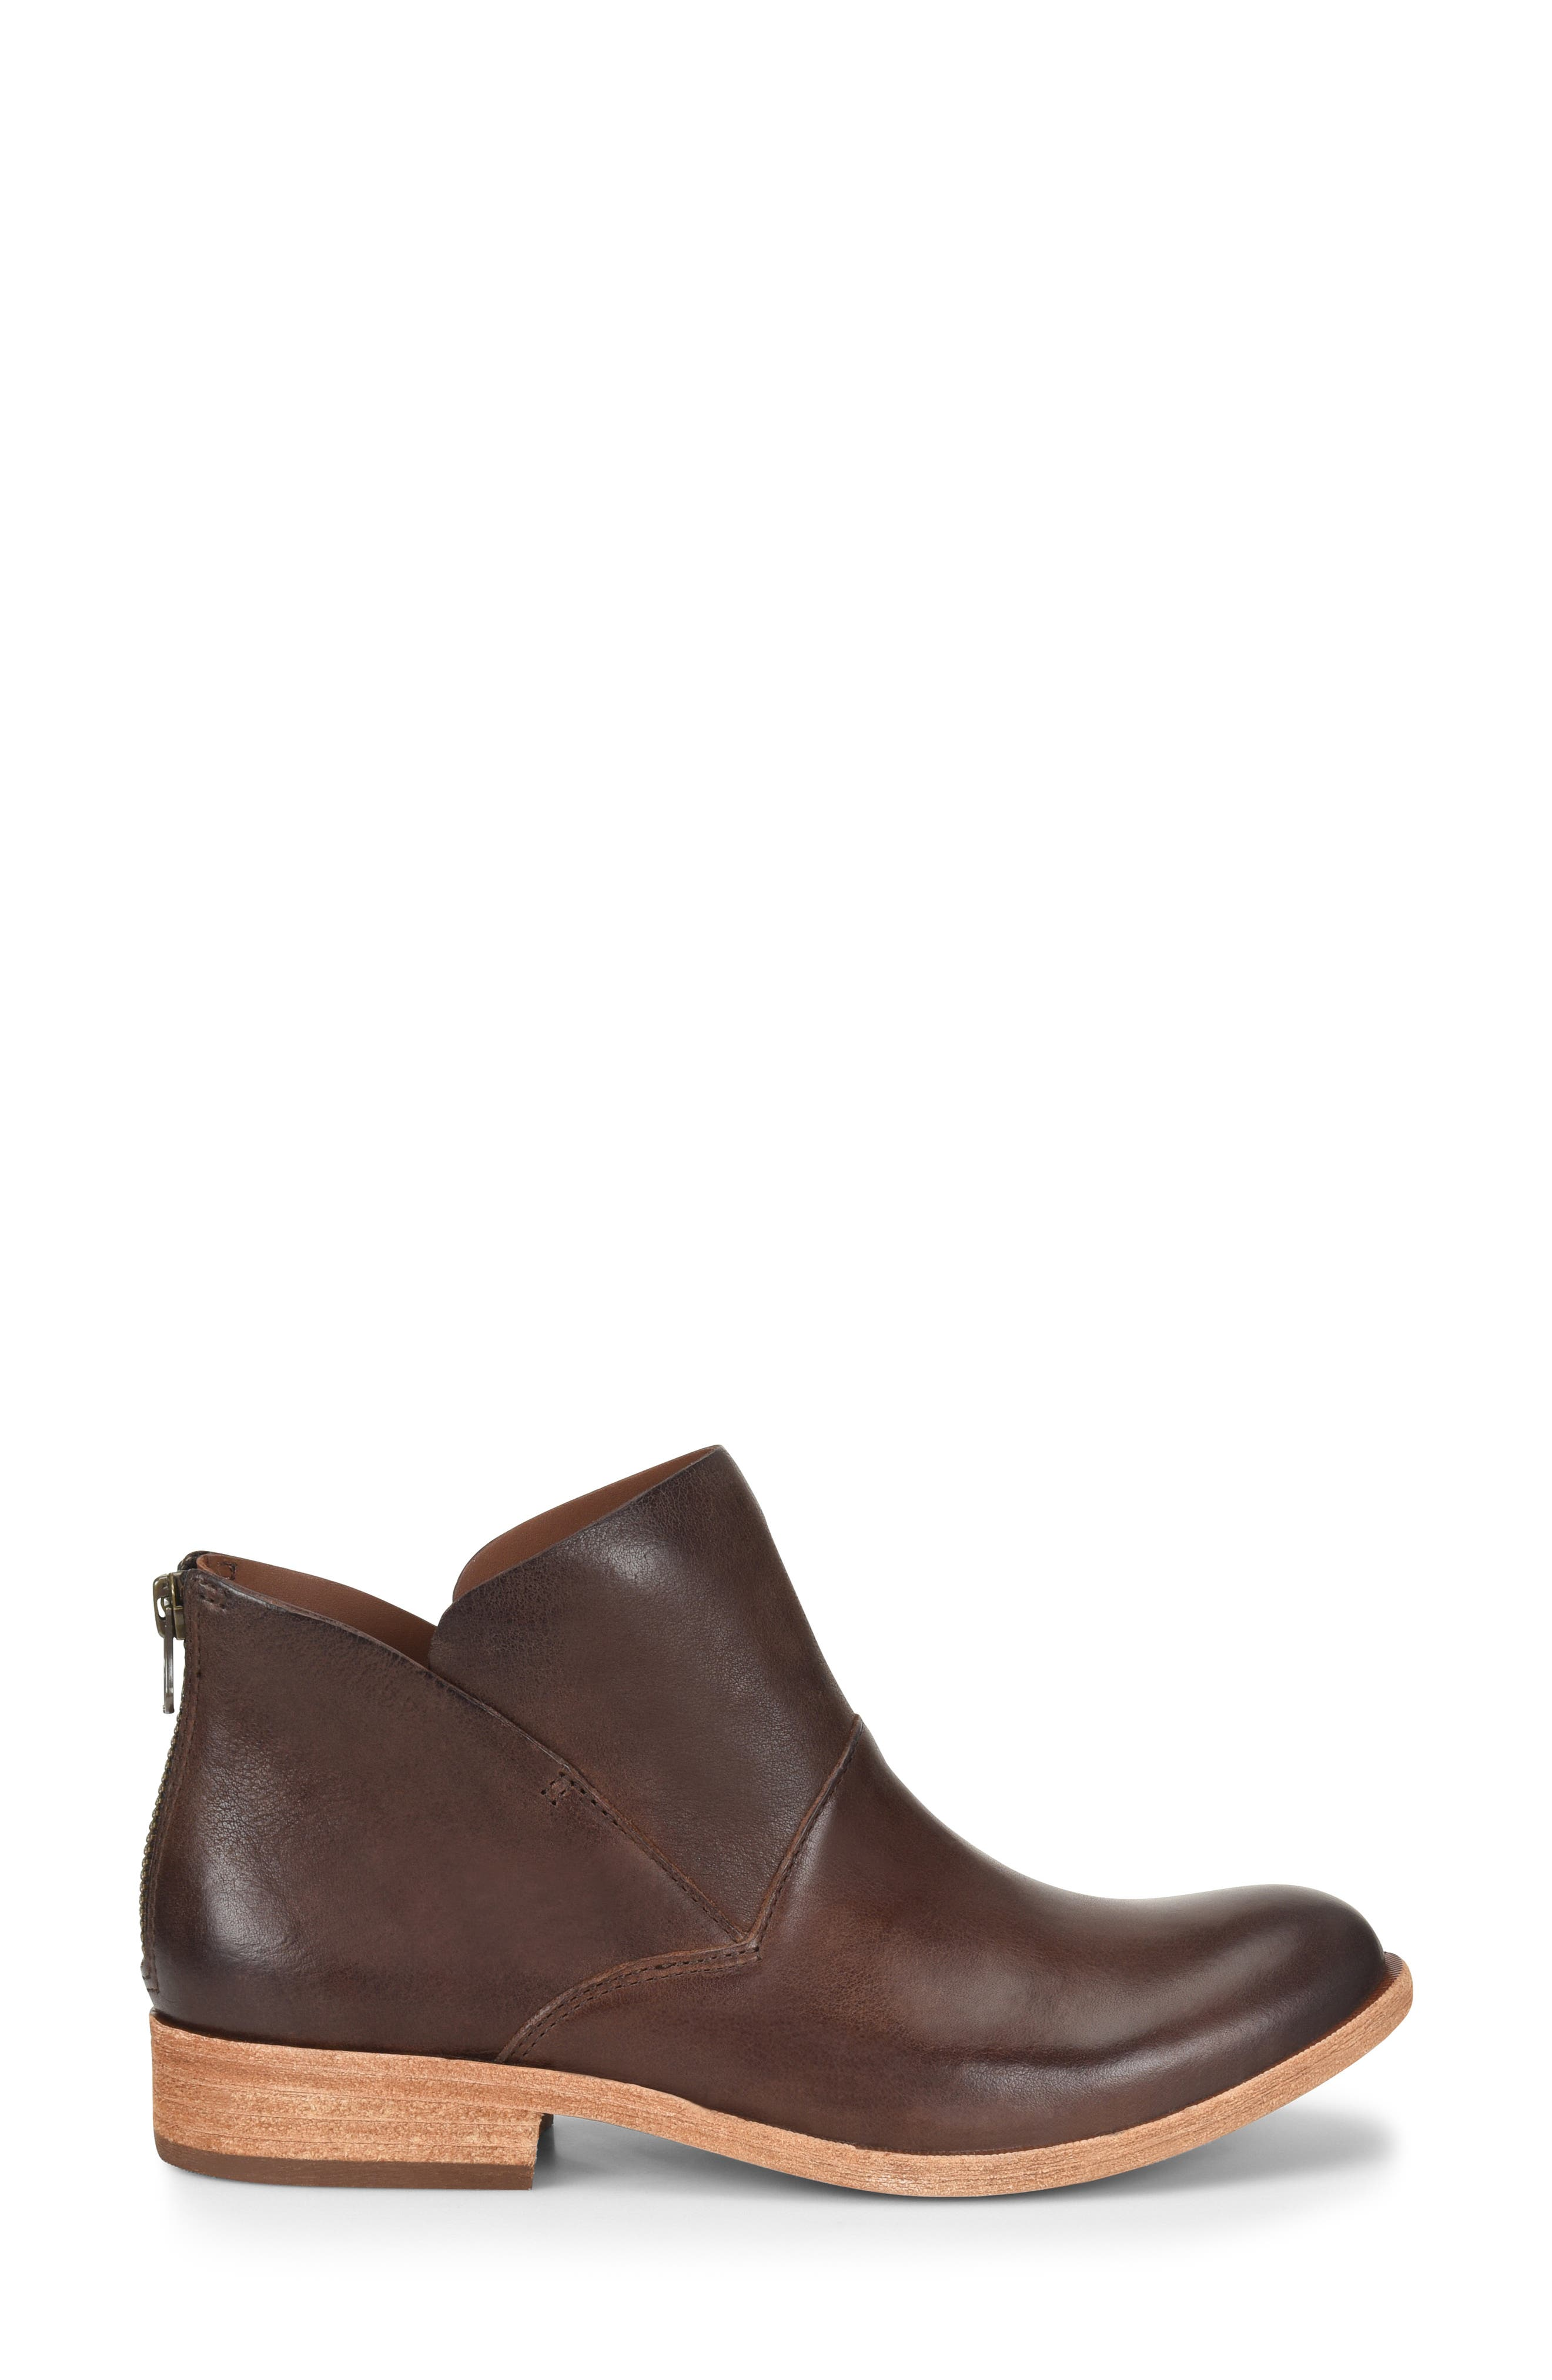 Ryder Ankle Boot,                             Alternate thumbnail 3, color,                             DARK BROWN LEATHER